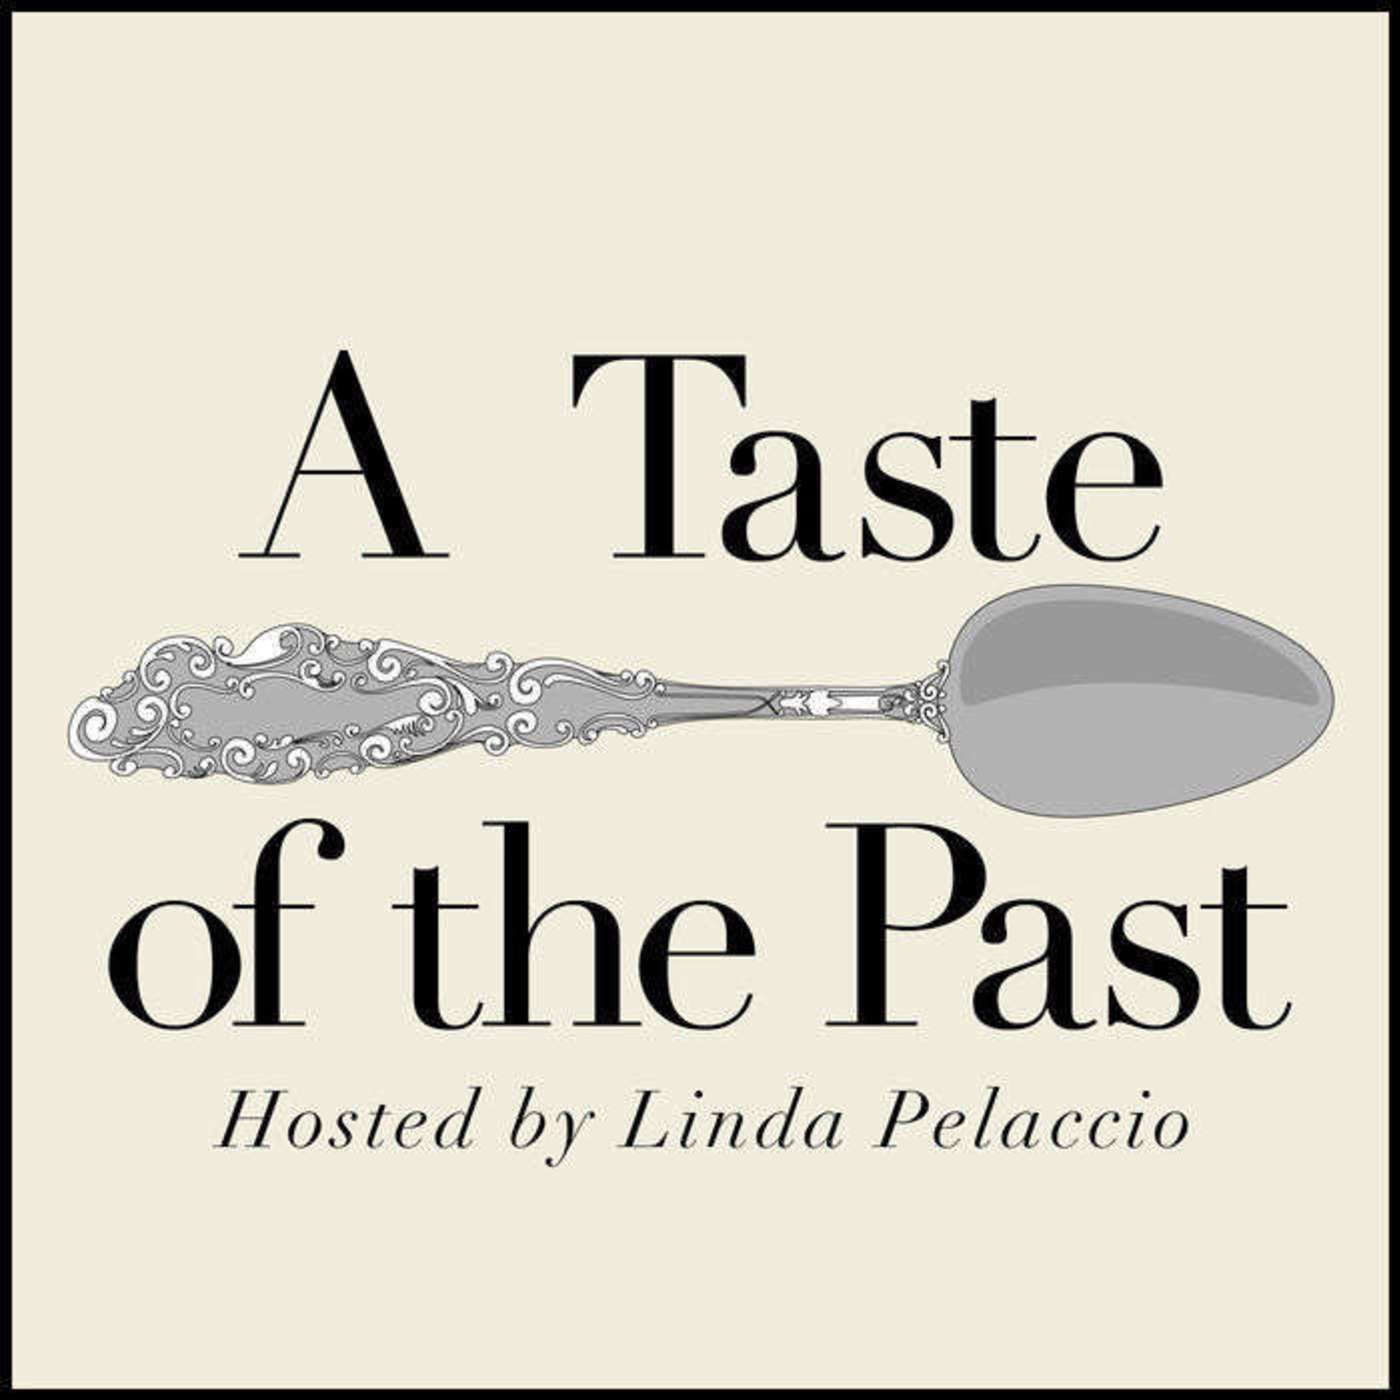 Episode 118: Thanksgiving's Roots with Food Historian Sandy Oliver